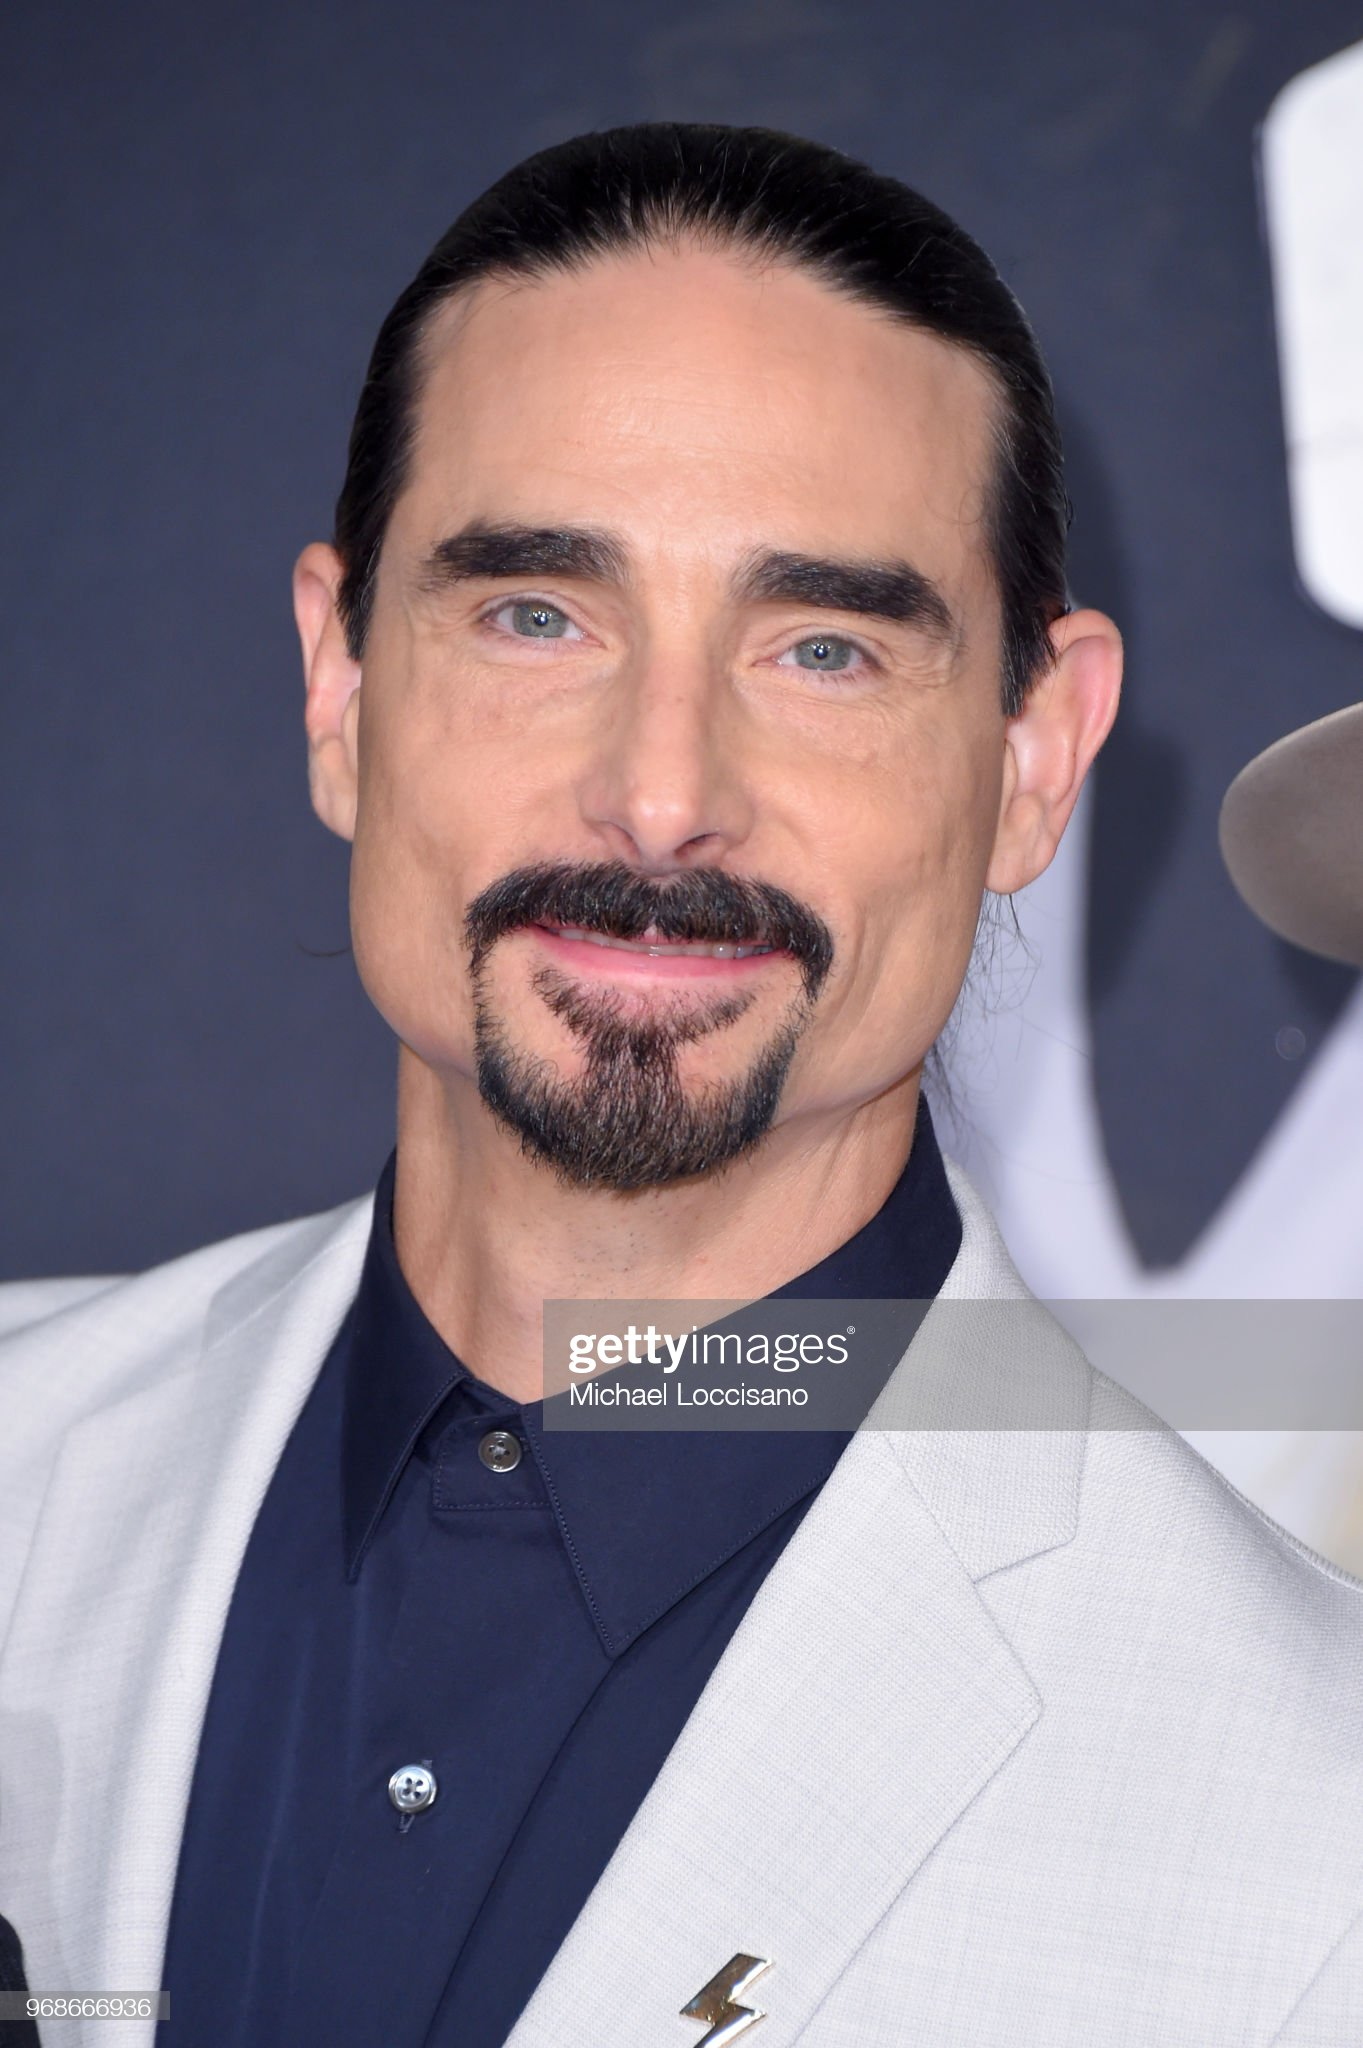 Ojos verdes - Famosas y famosos con los ojos de color VERDE Kevin-richardson-of-musical-group-backstreet-boys-attends-the-2018-picture-id968666936?s=2048x2048